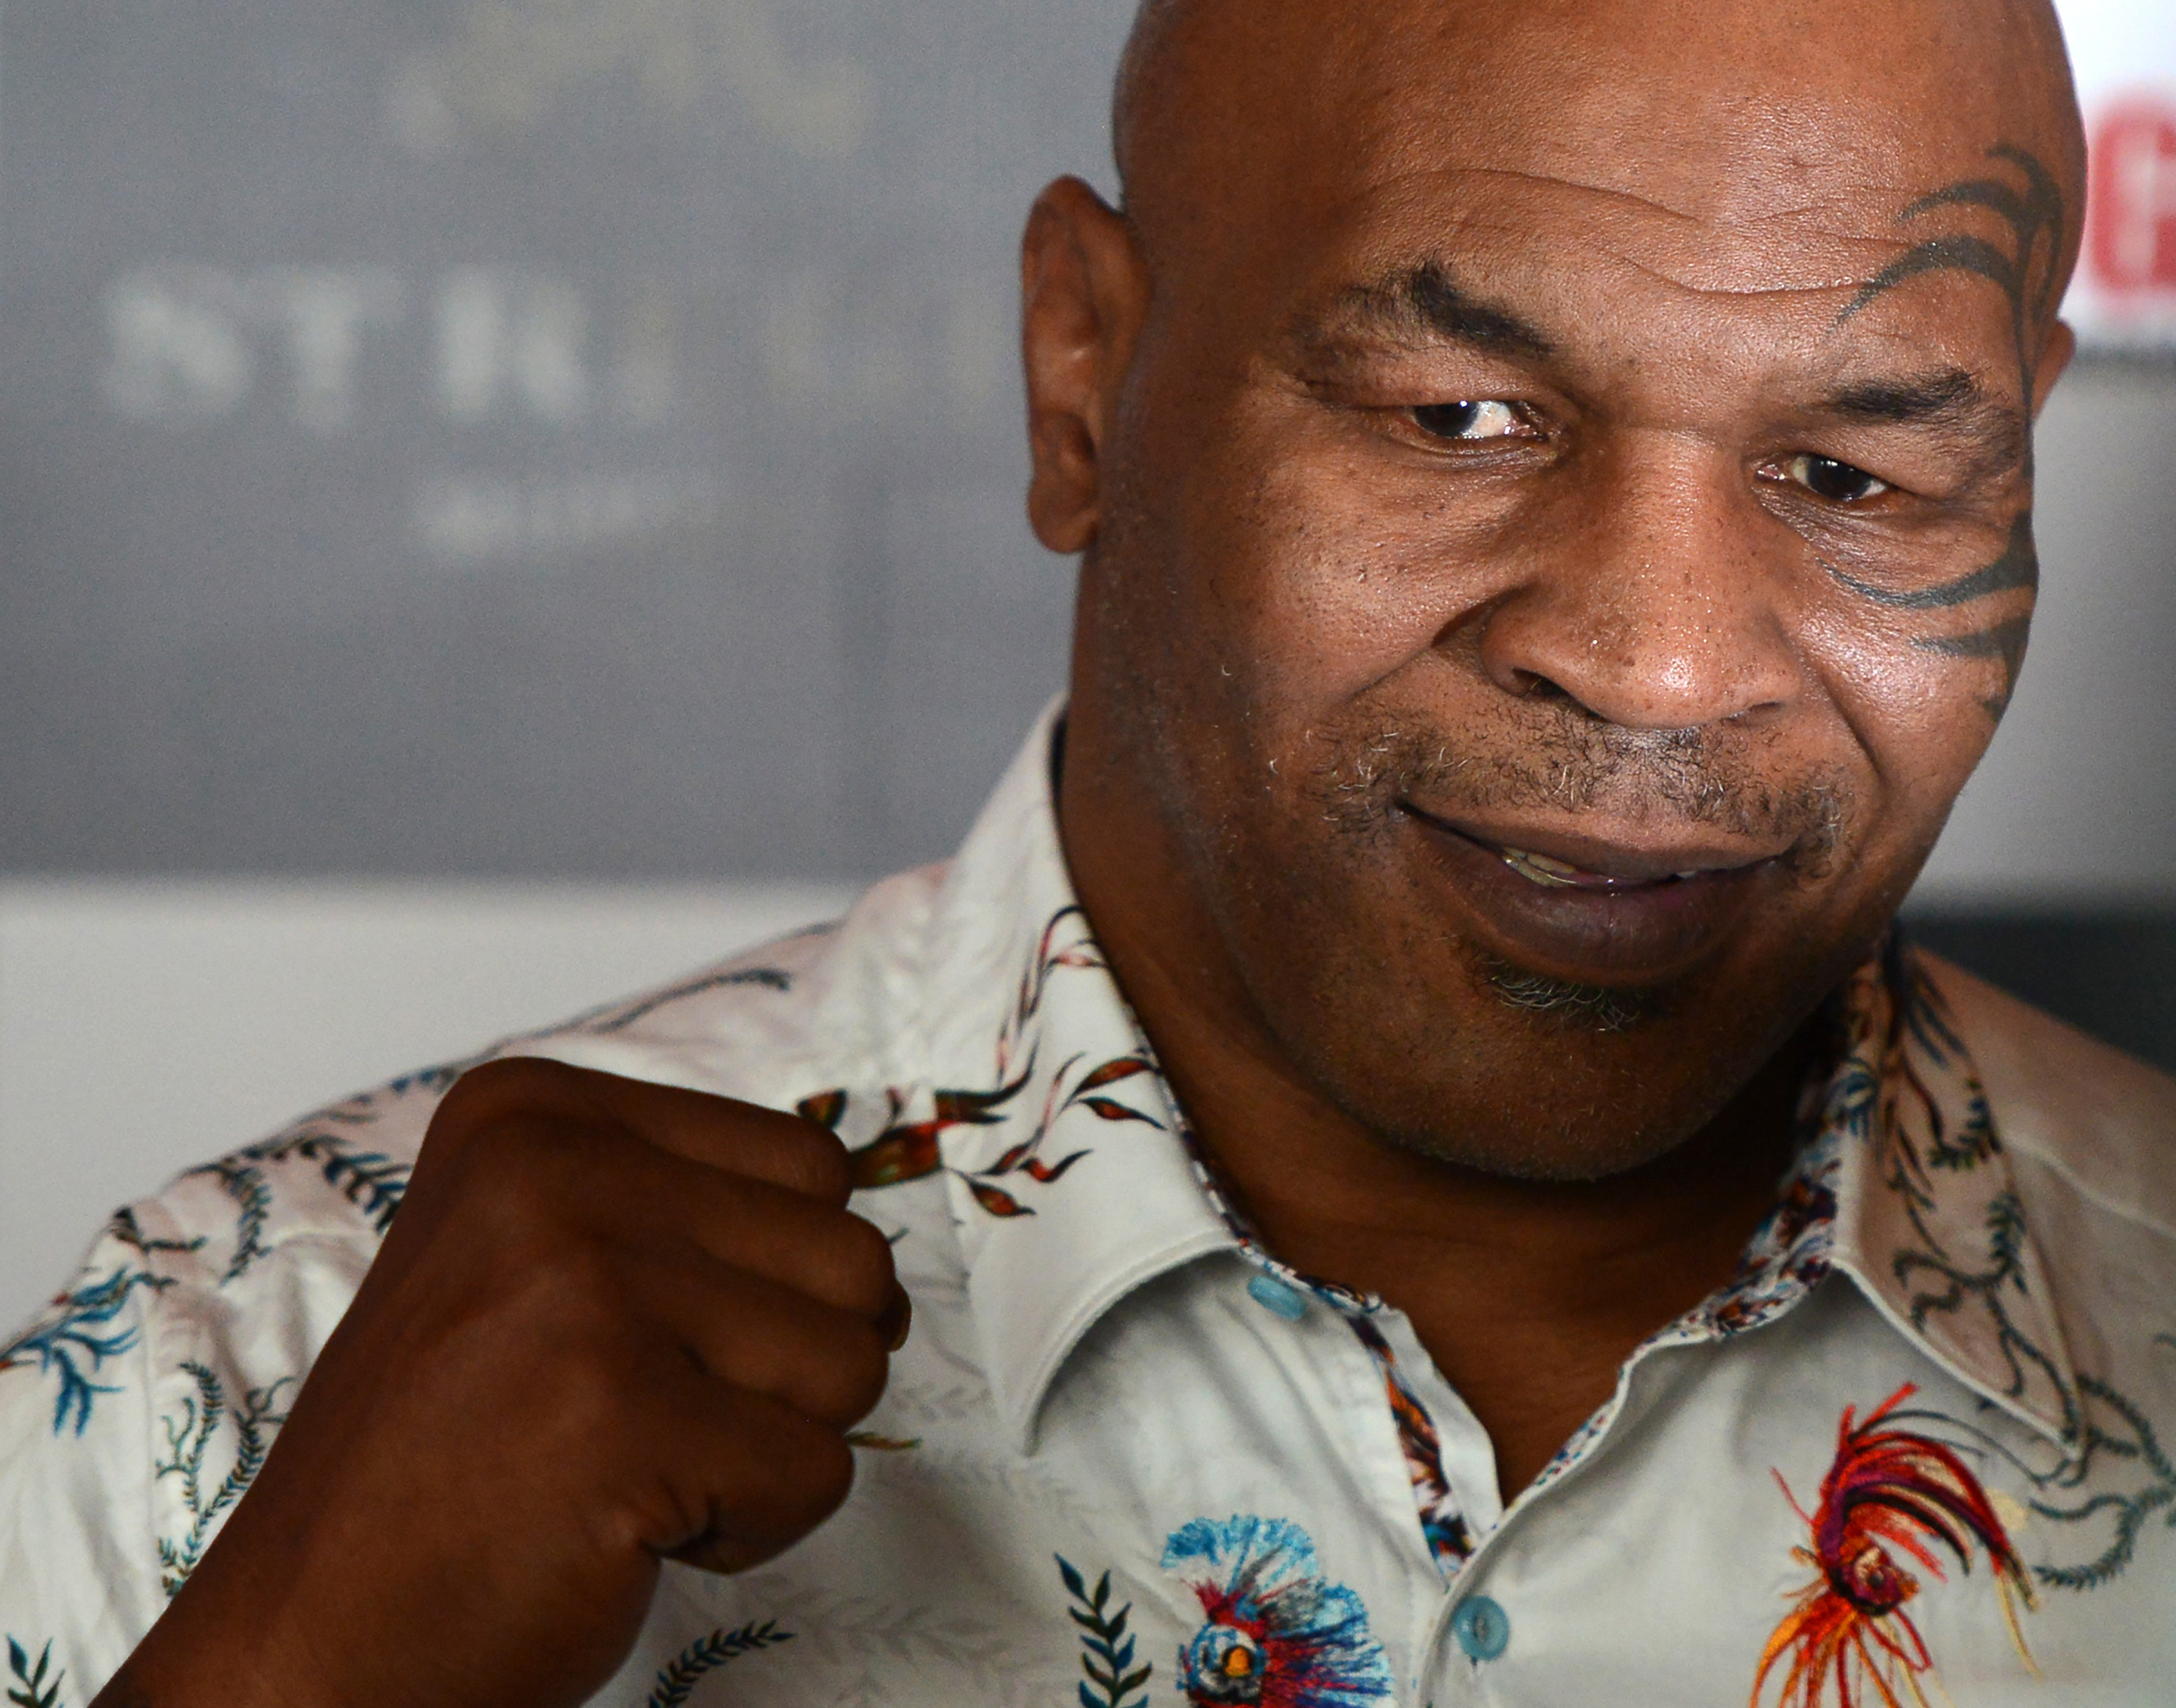 mike tyson and roy jones jr are both in their 50s they will be fighting for a wbc belt in a month the washington post mike tyson and roy jones jr are both in their 50s they will be fighting for a wbc belt in a month the washington post